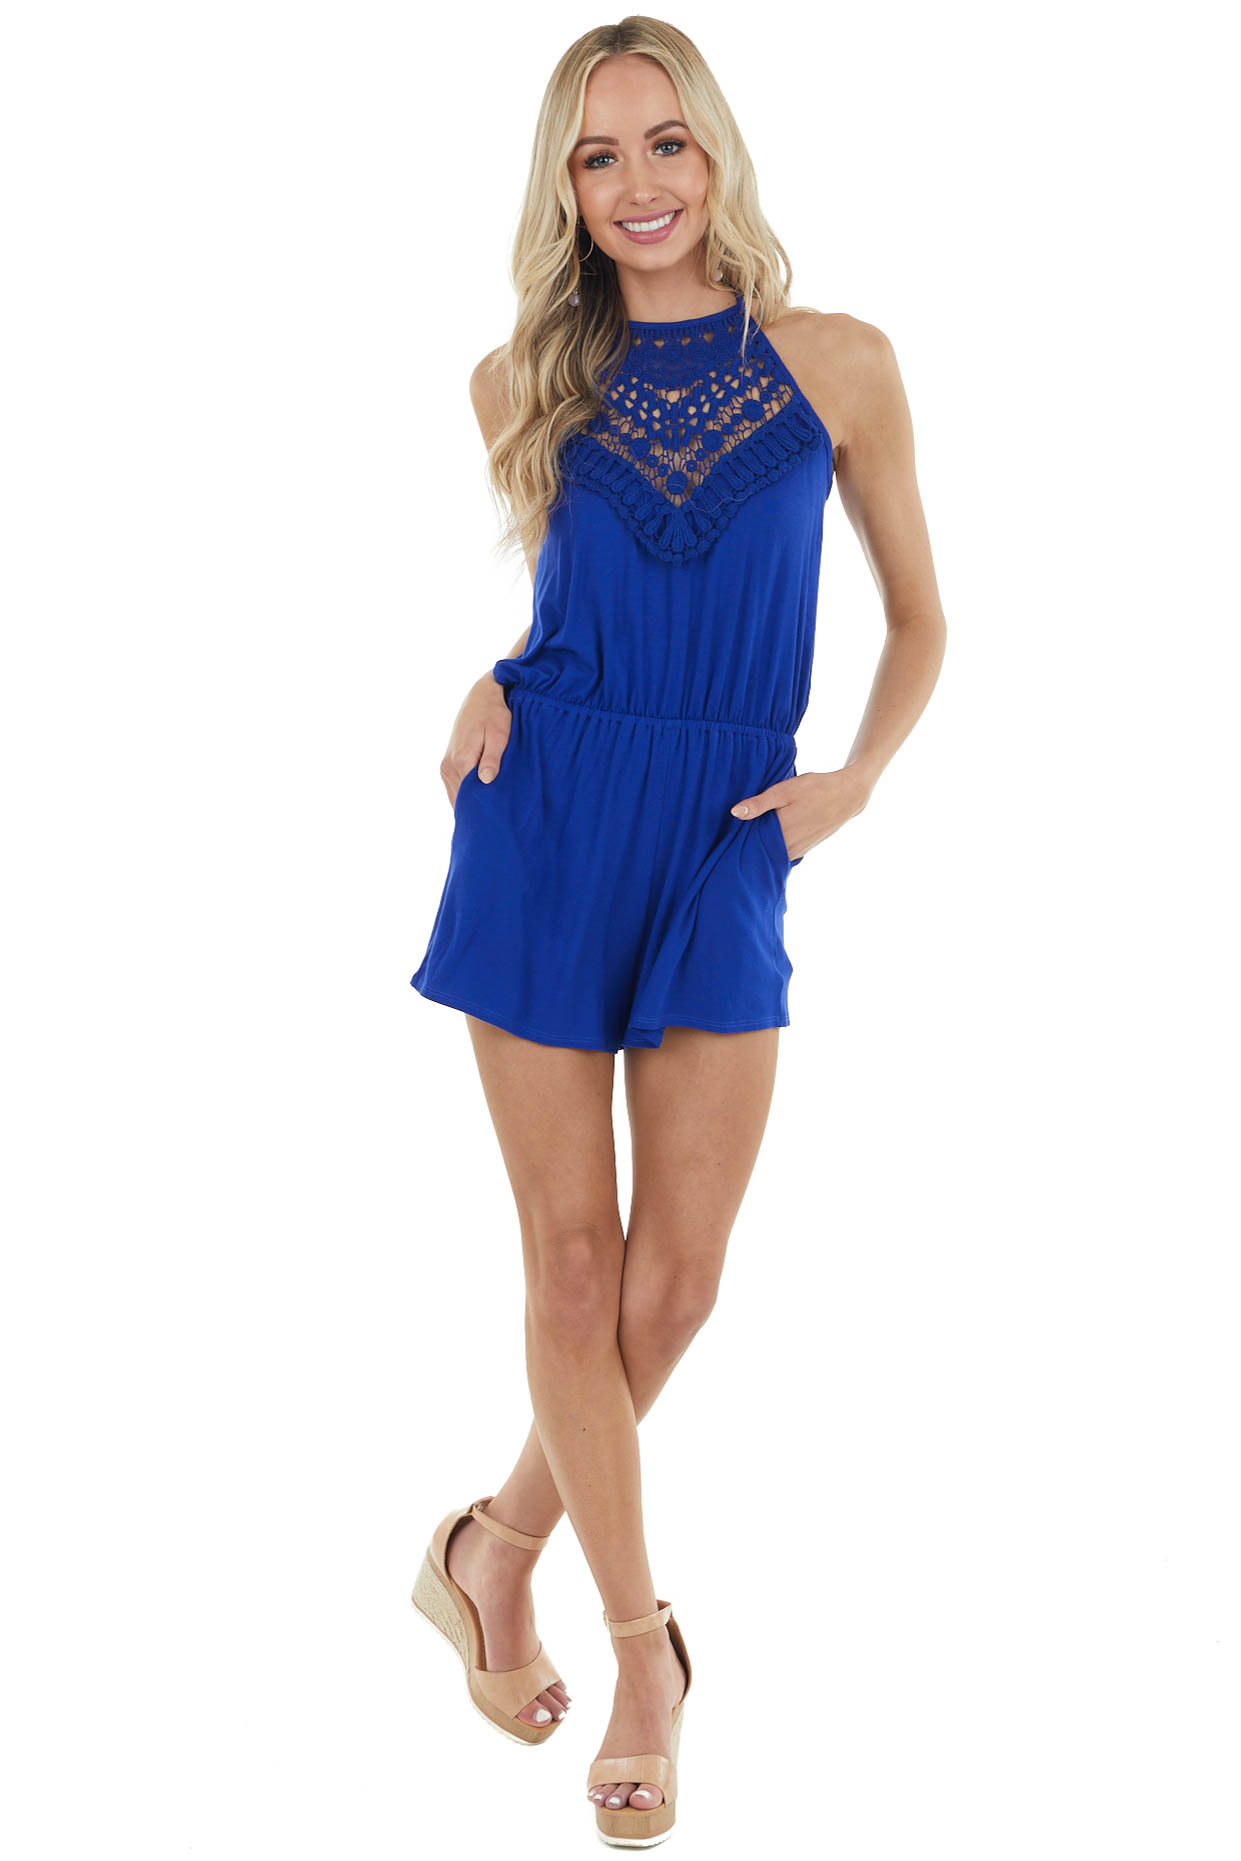 Royal Blue Spaghetti Strap Romper with Crocheted Lace Detail